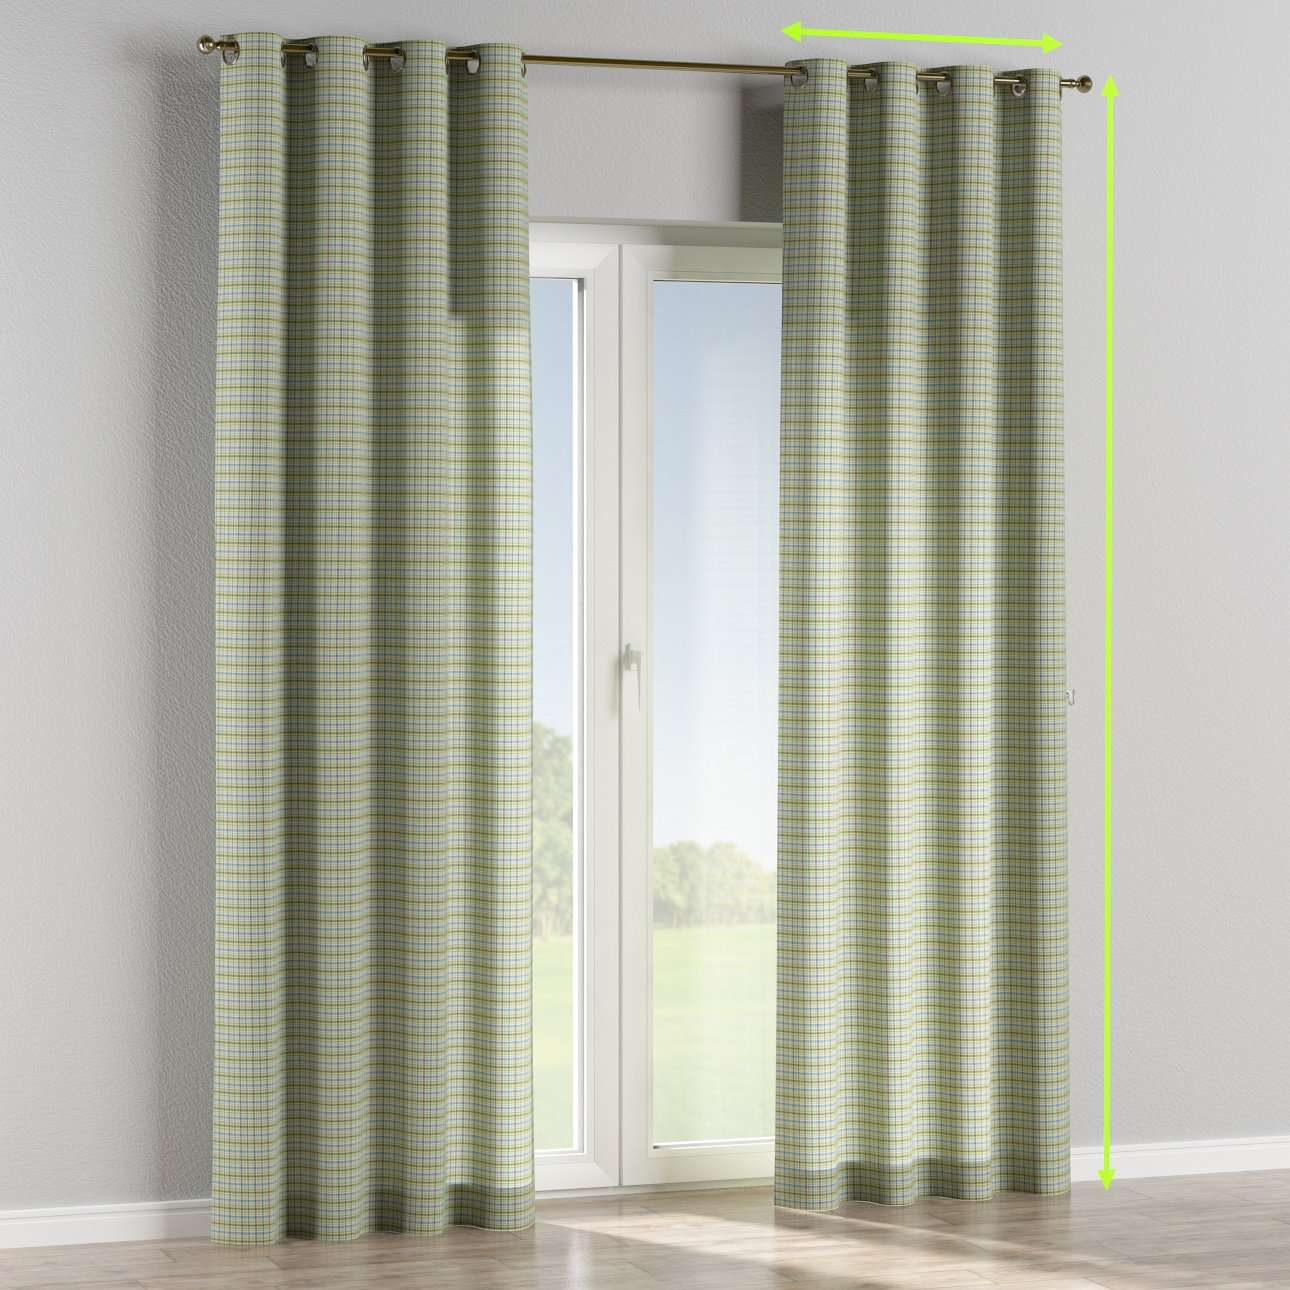 Eyelet curtains in collection Bristol, fabric: 126-69